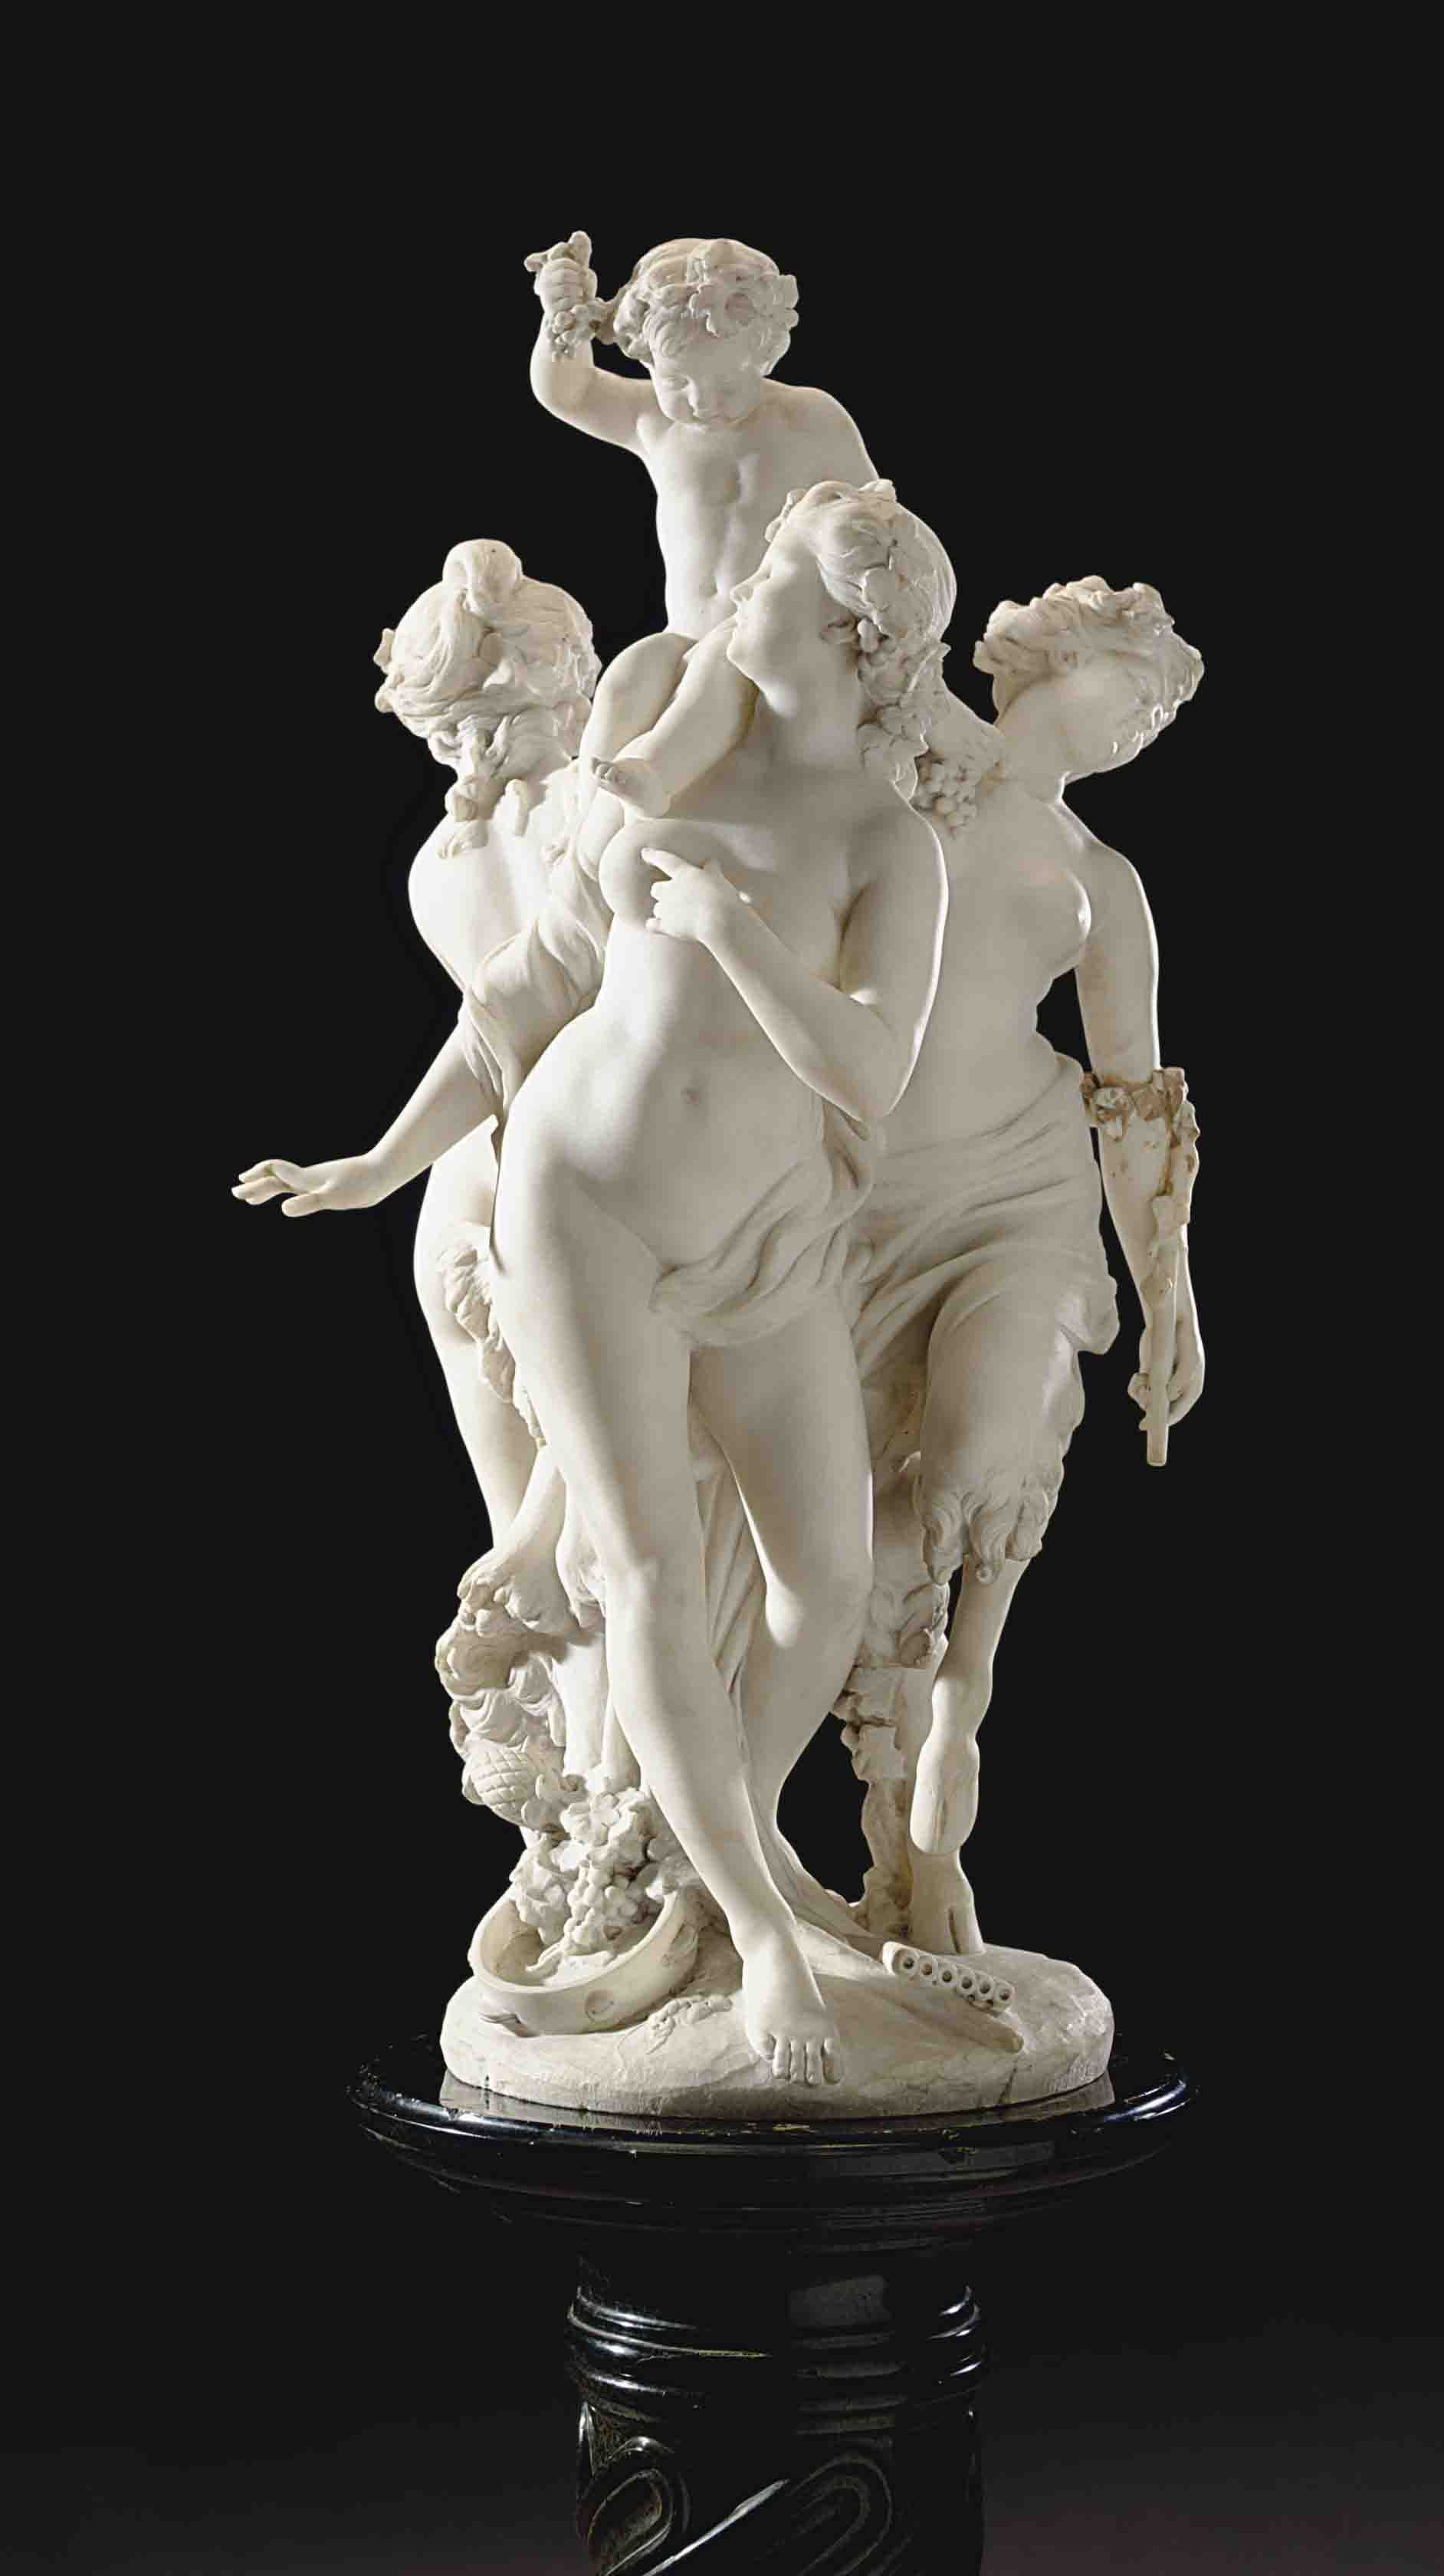 An Italian Marble Bacchanalia Group By Domenico Bacci Late 19th Early 20th Century Sculptures Statues F Sculpture Art Horse Sculpture Italian Sculpture